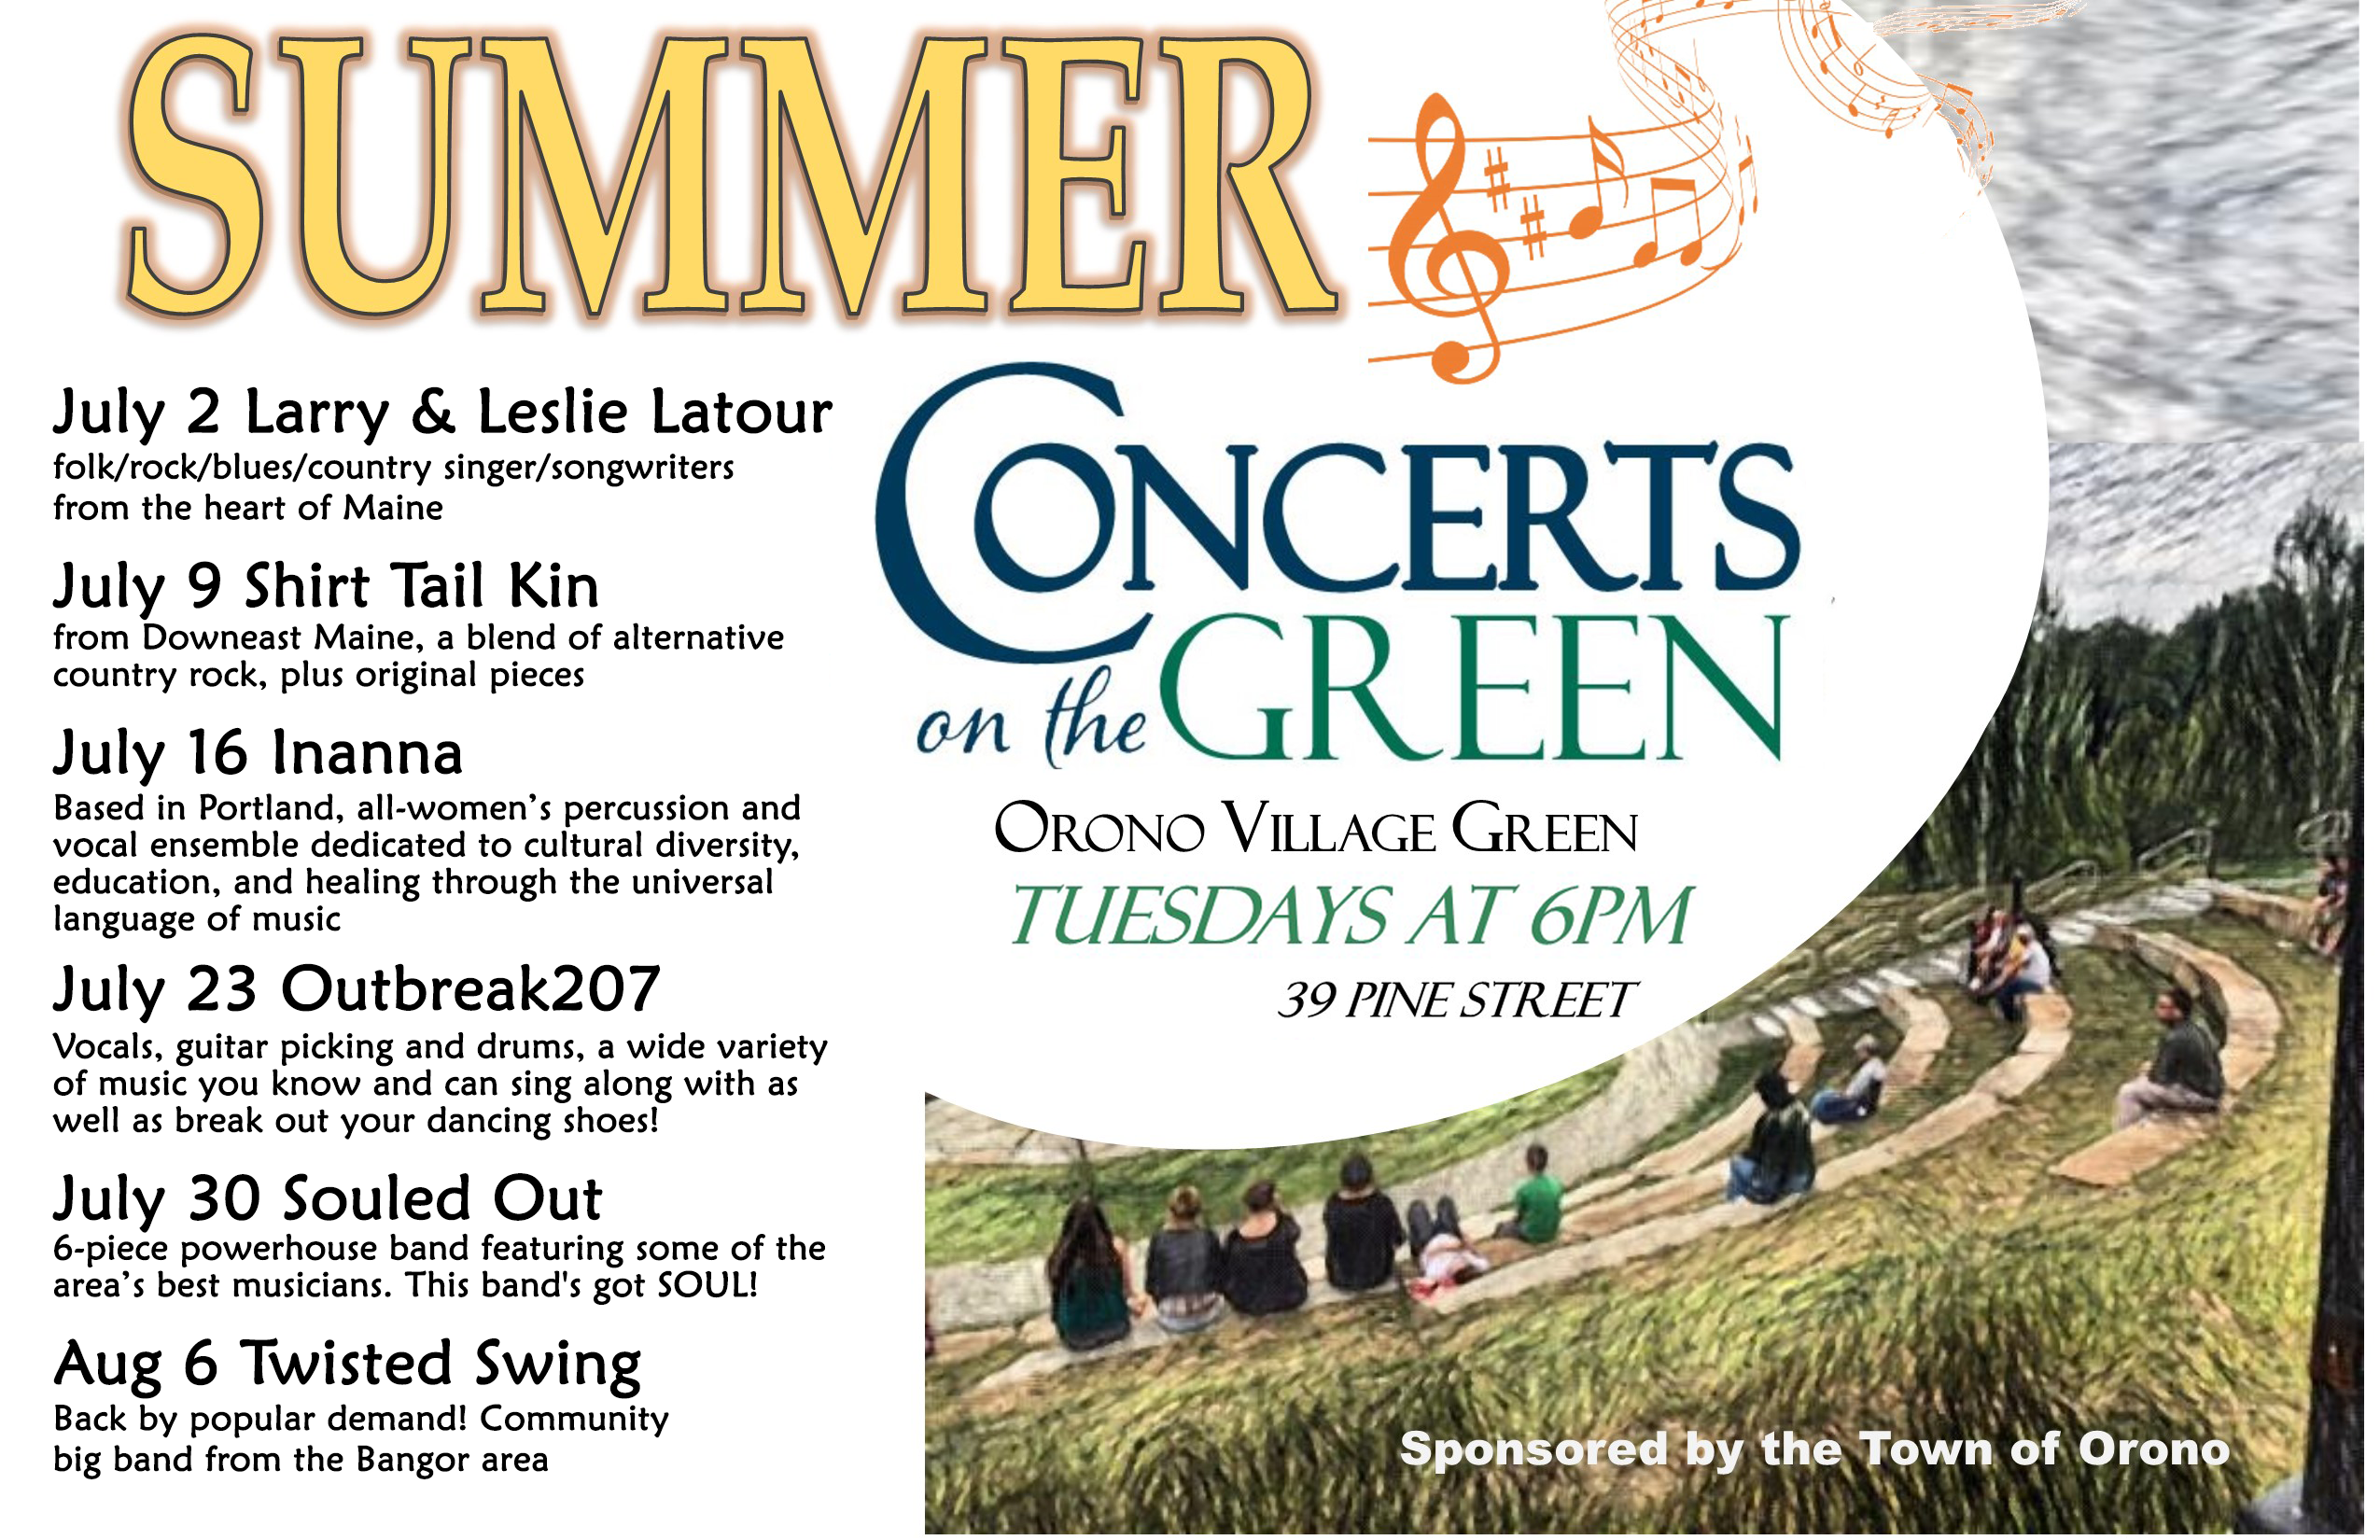 Summer Concert Series schedule - see below for text version